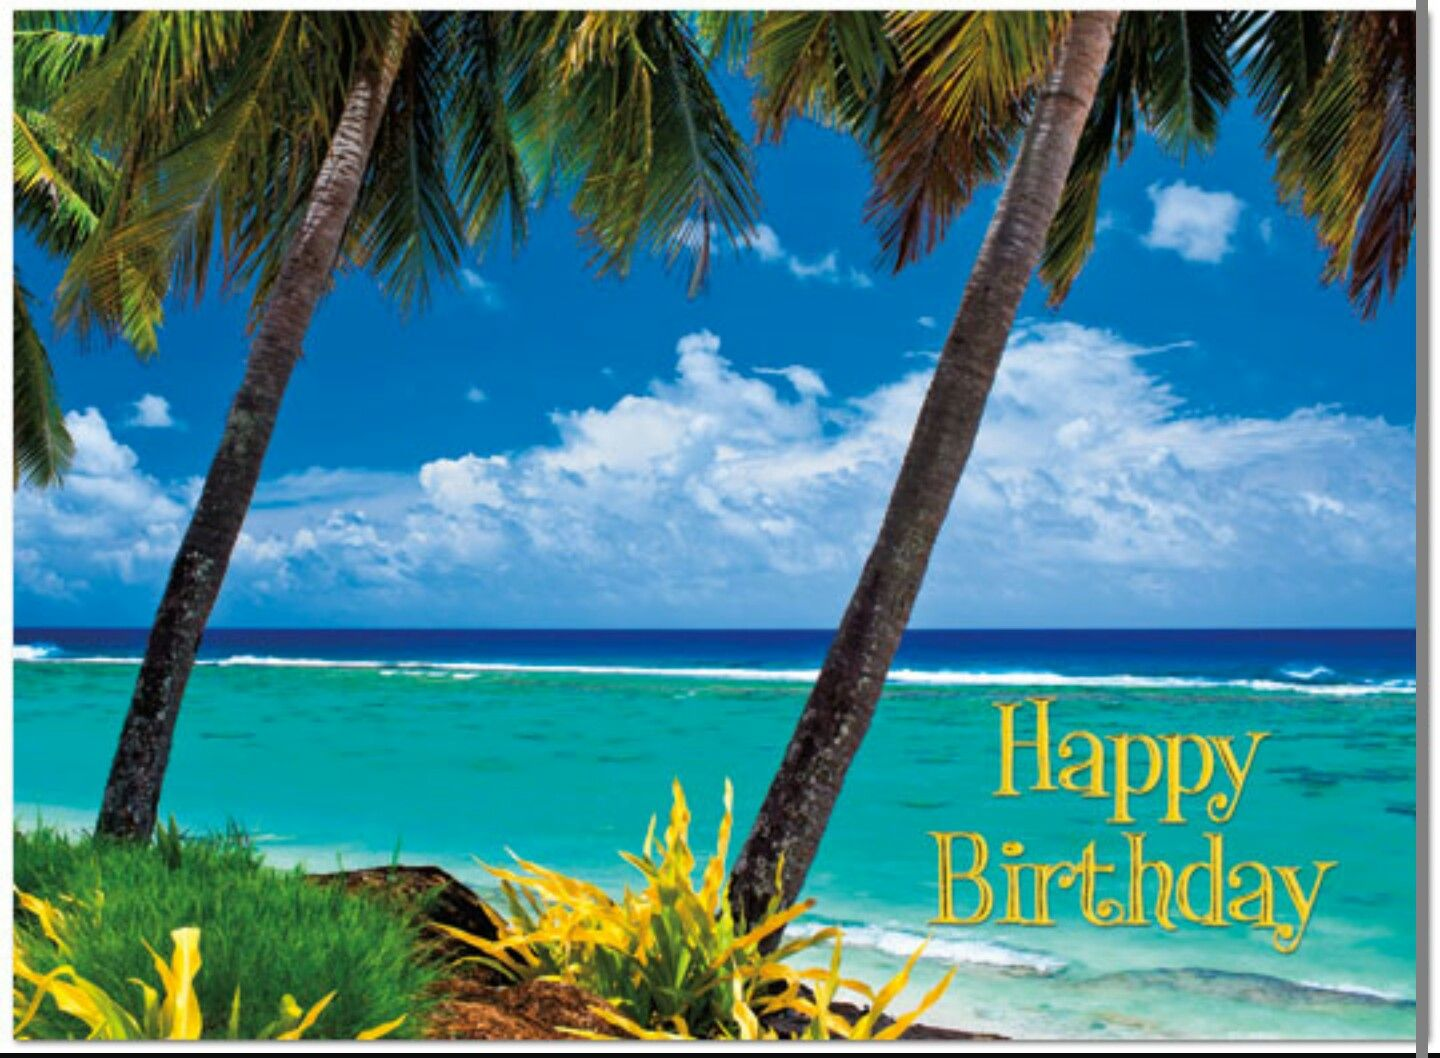 Hbd Beach Palm Trees Ocean Blue Sky With Images